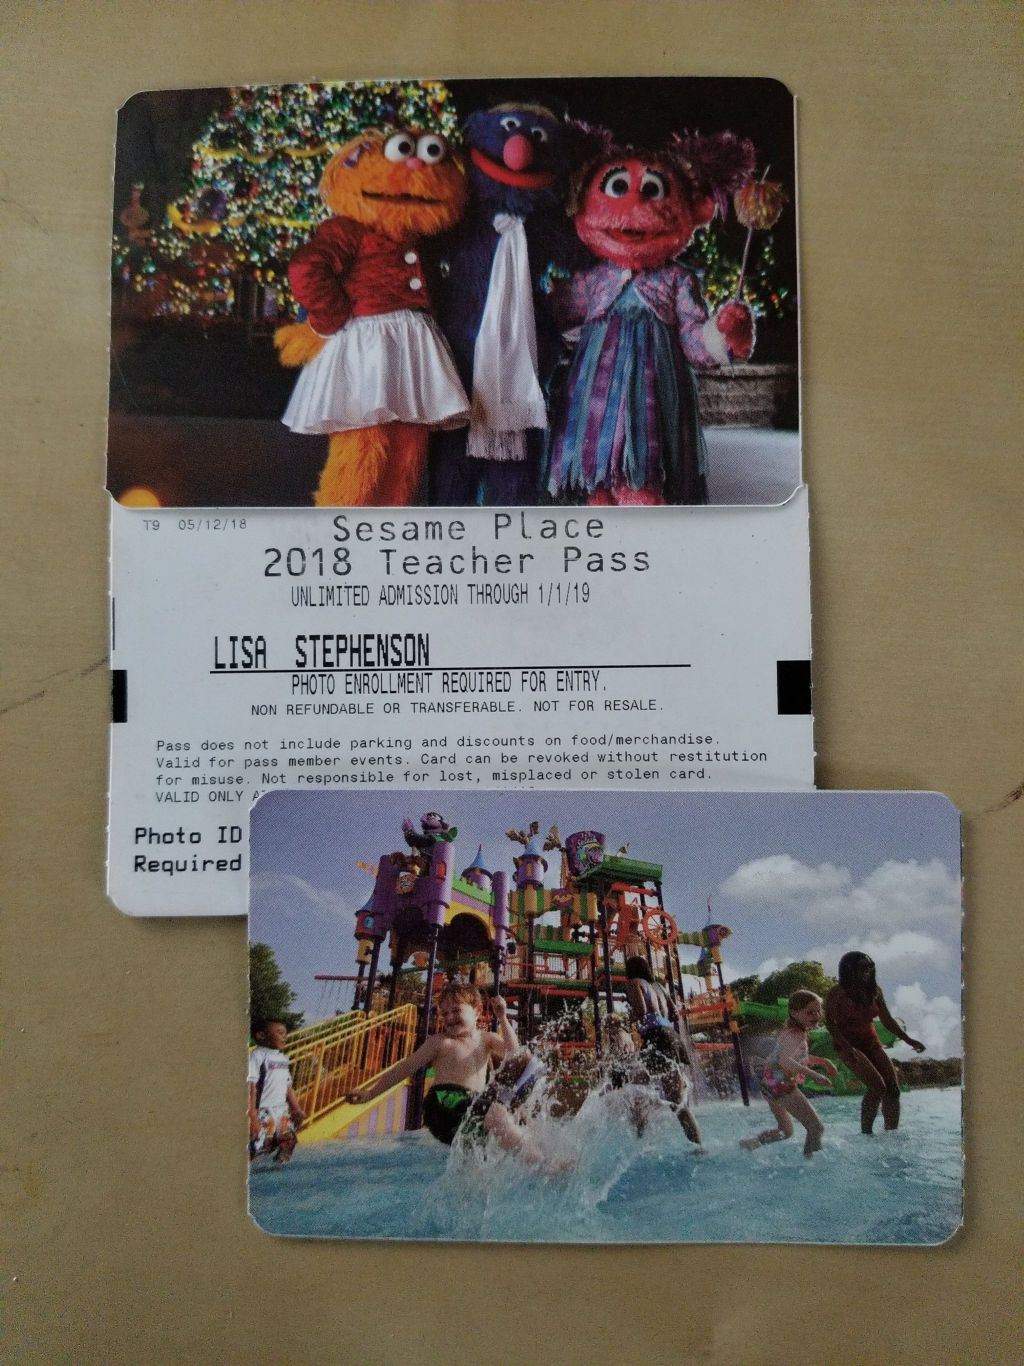 Do's and Dont's for Sesame Place